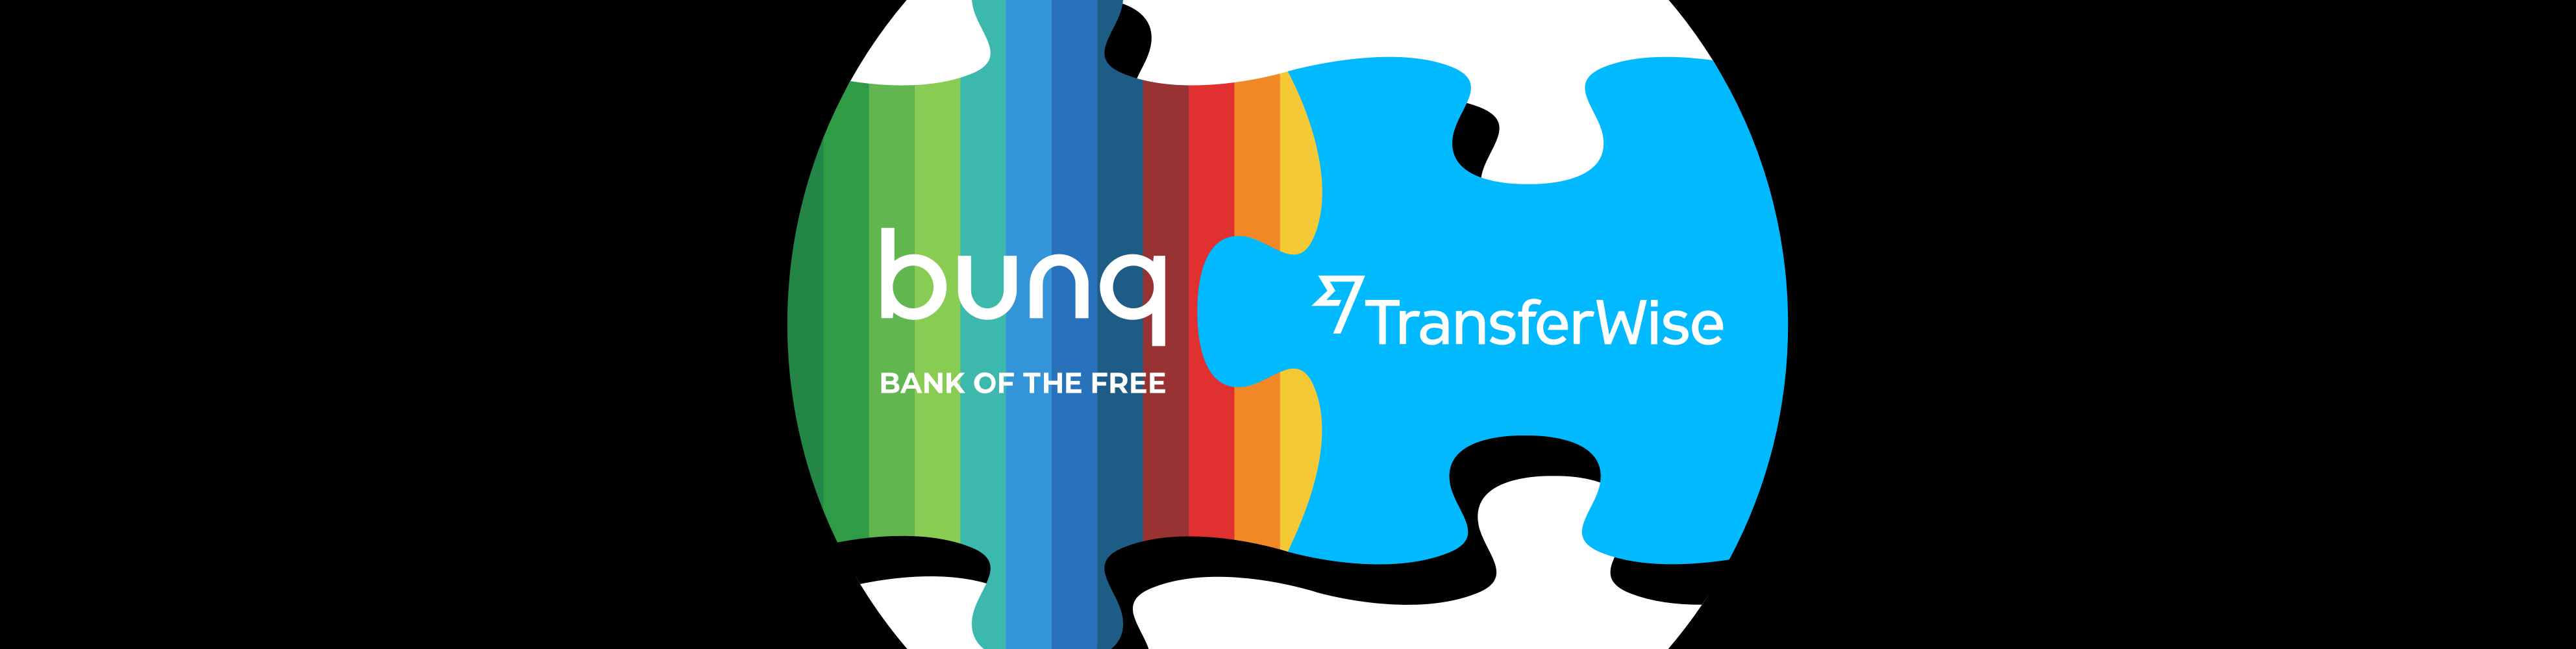 Illustrated puzzle with bunq piece and transferwise piece uniting.